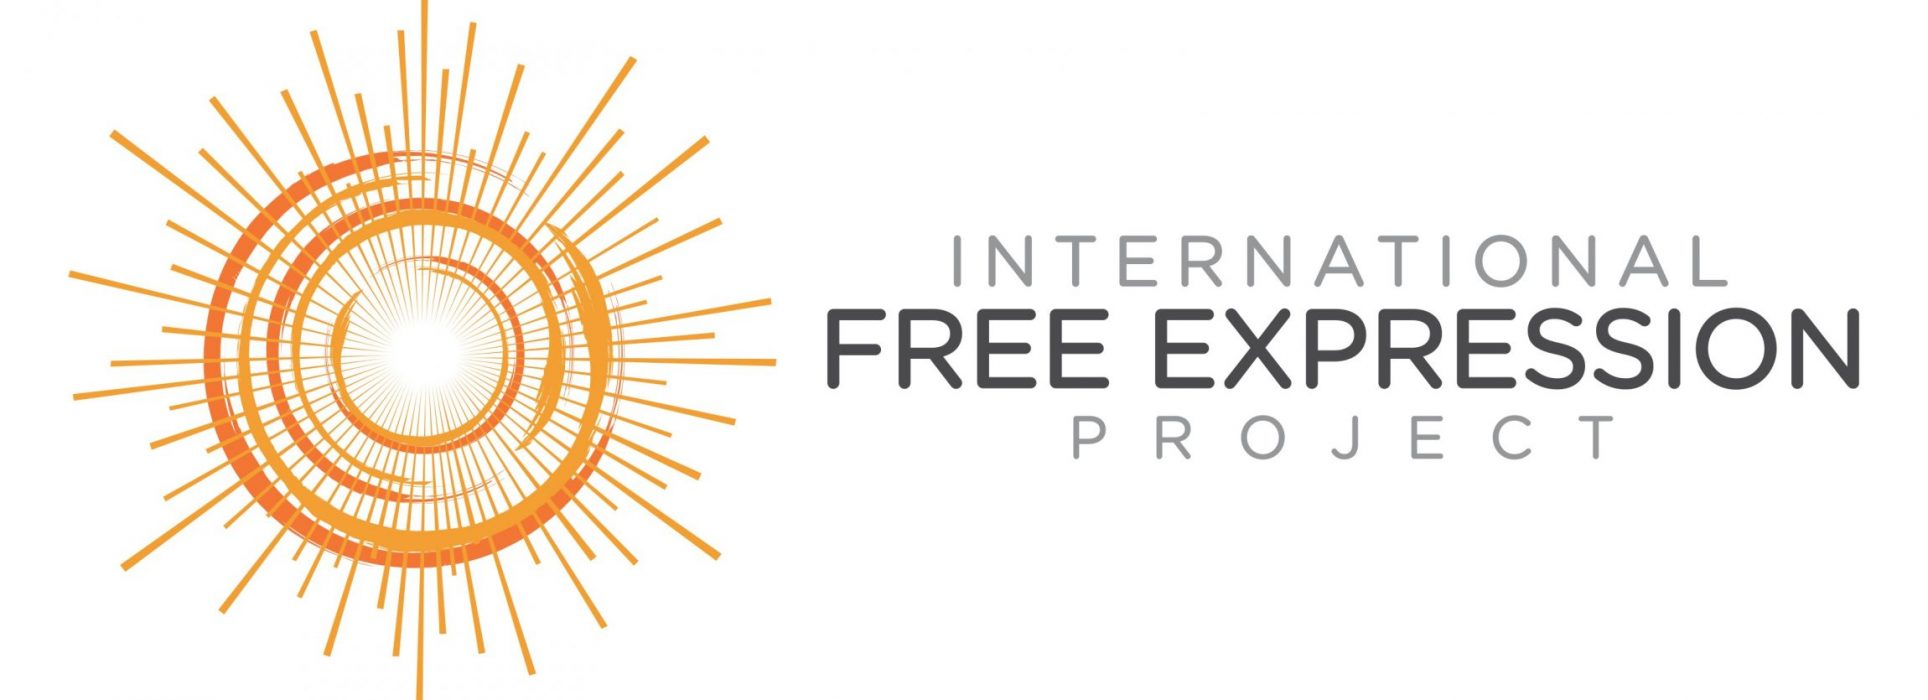 International Free Expression Project – New Sun Rising